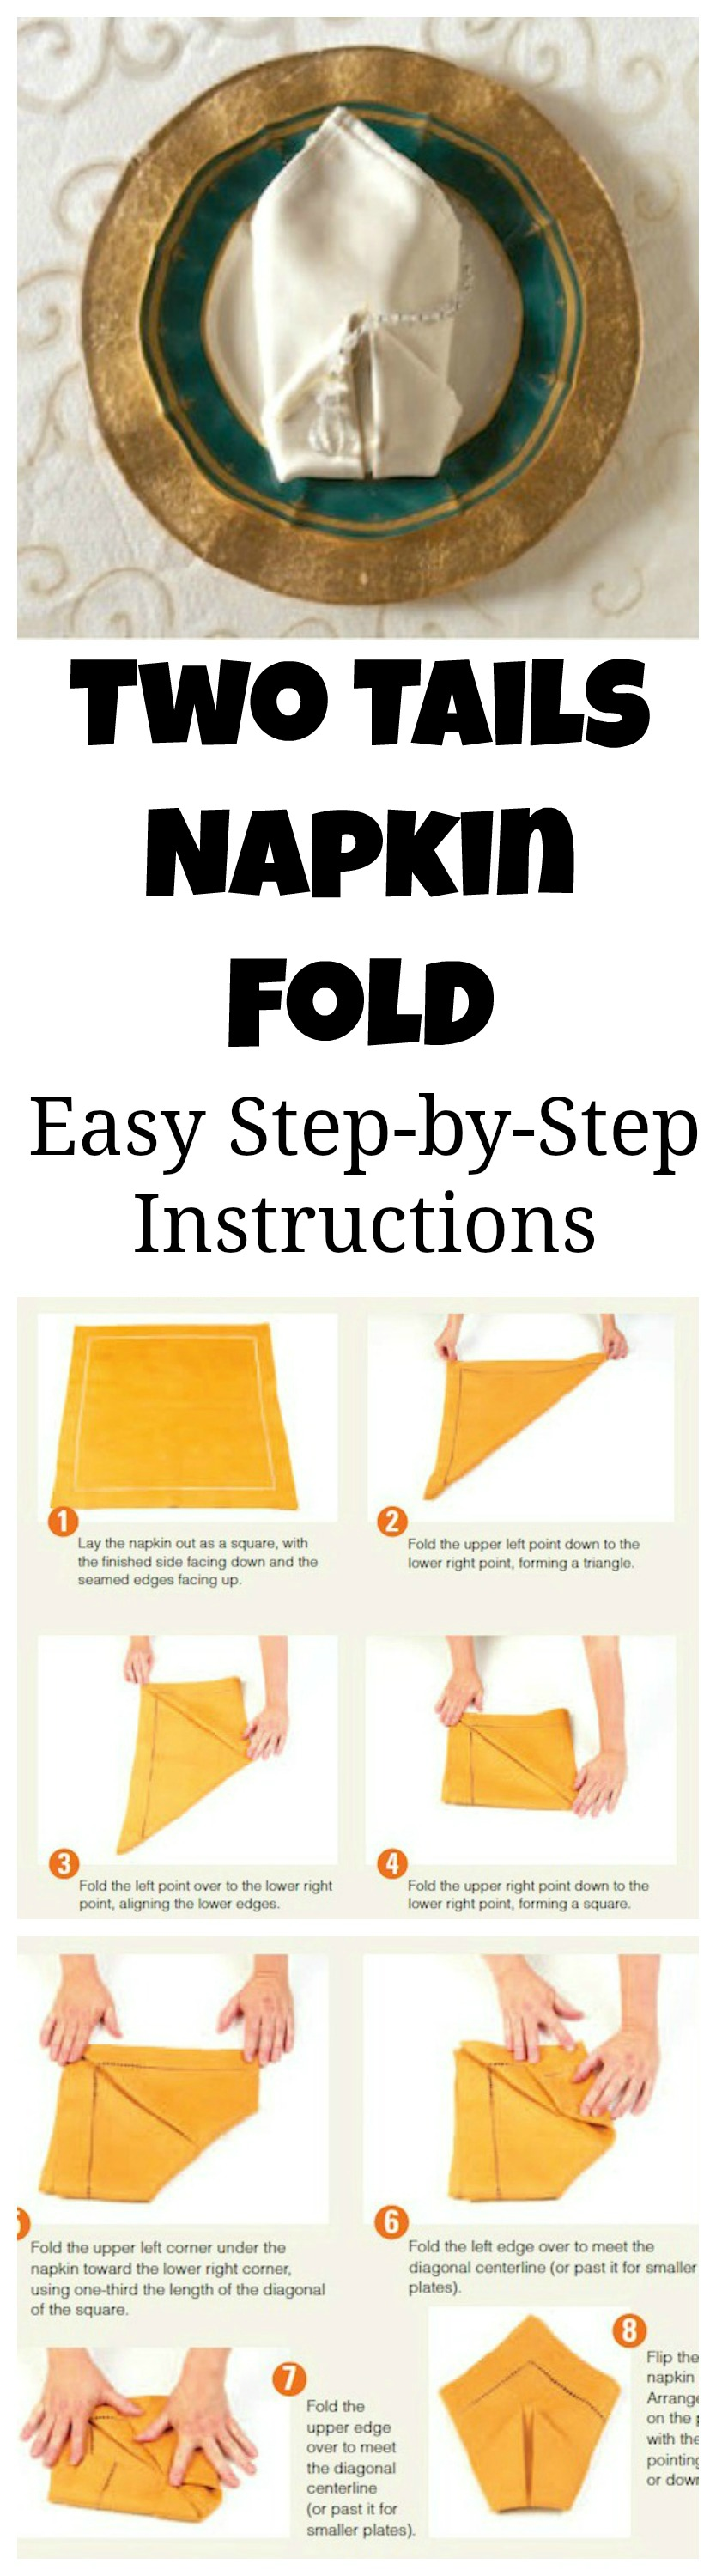 How To Fold Your Napkins For Thanksgiving Two Tails Napkin Fold Shockingly Delicious